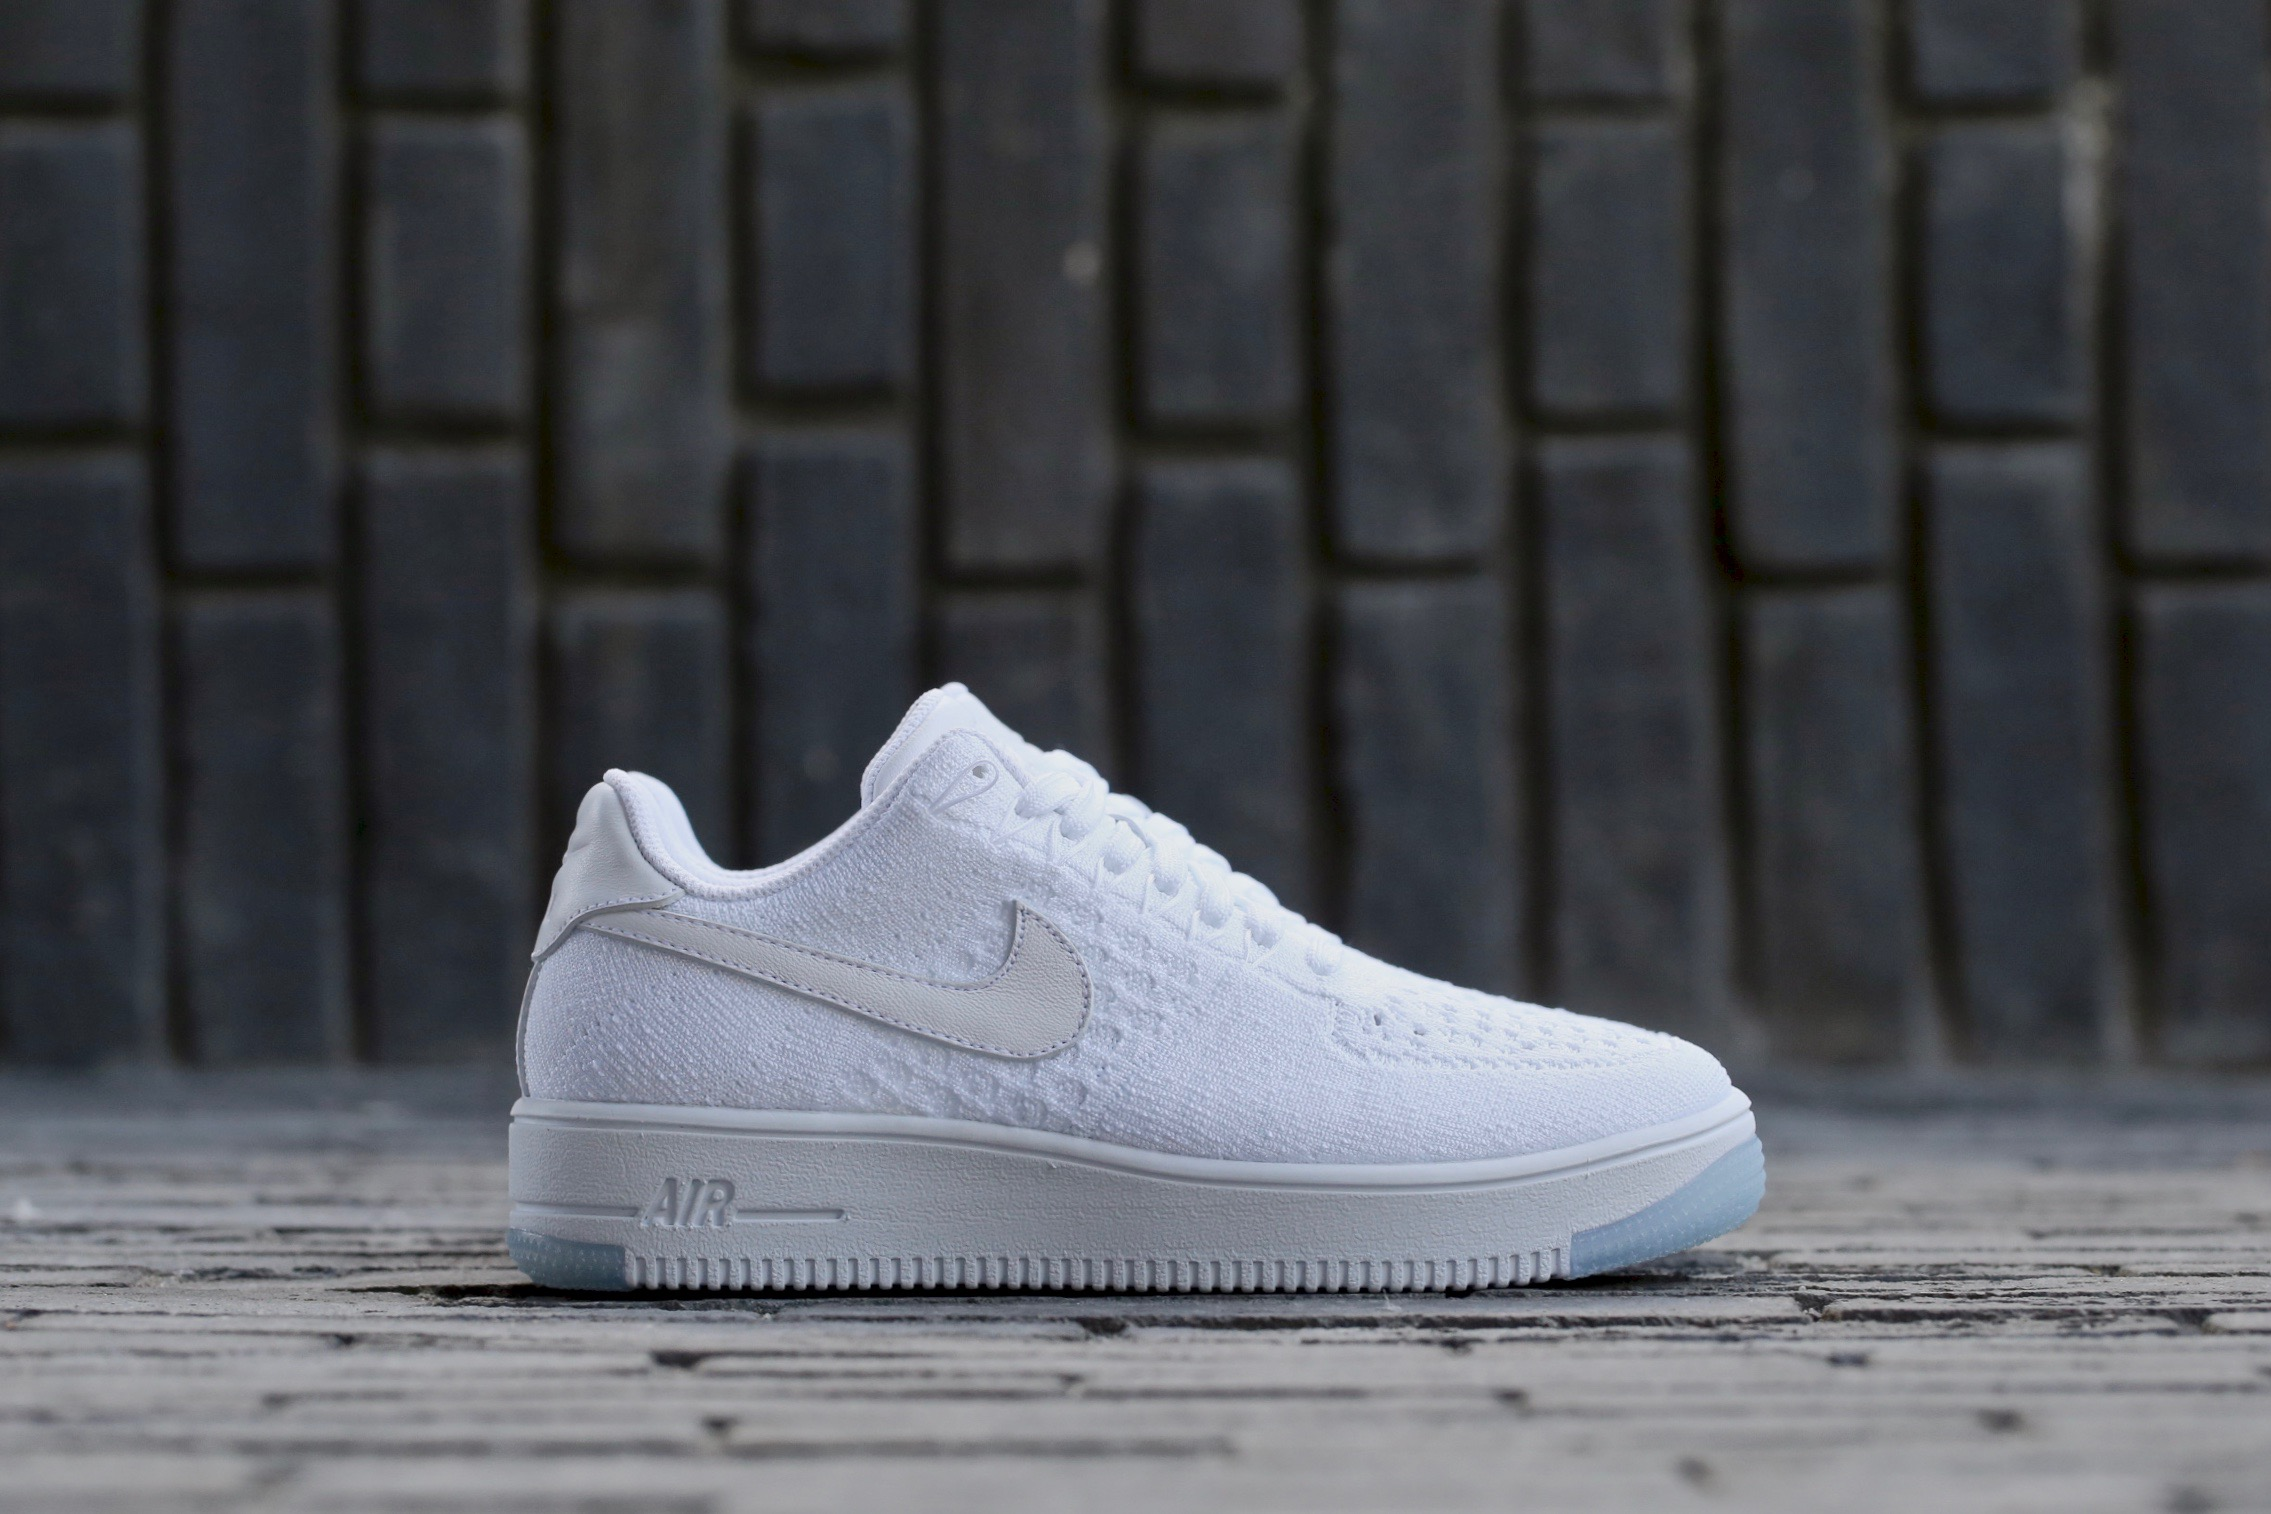 670be7d8f4b5 Nike W Air Force 1 Flyknit Low – White   White – STASP